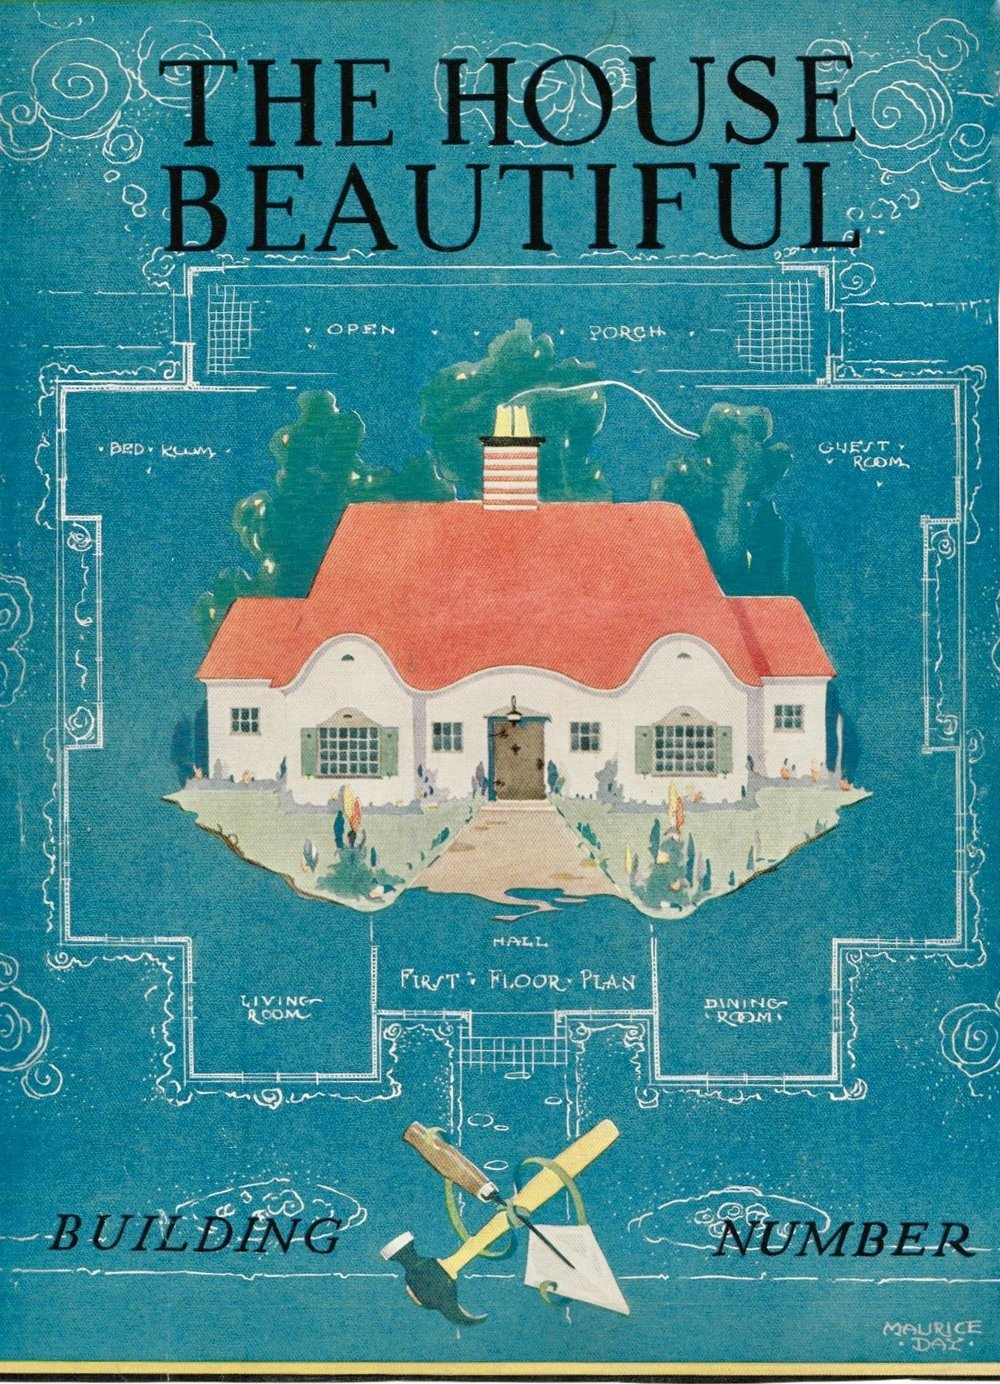 House Beautiful, September, 1924